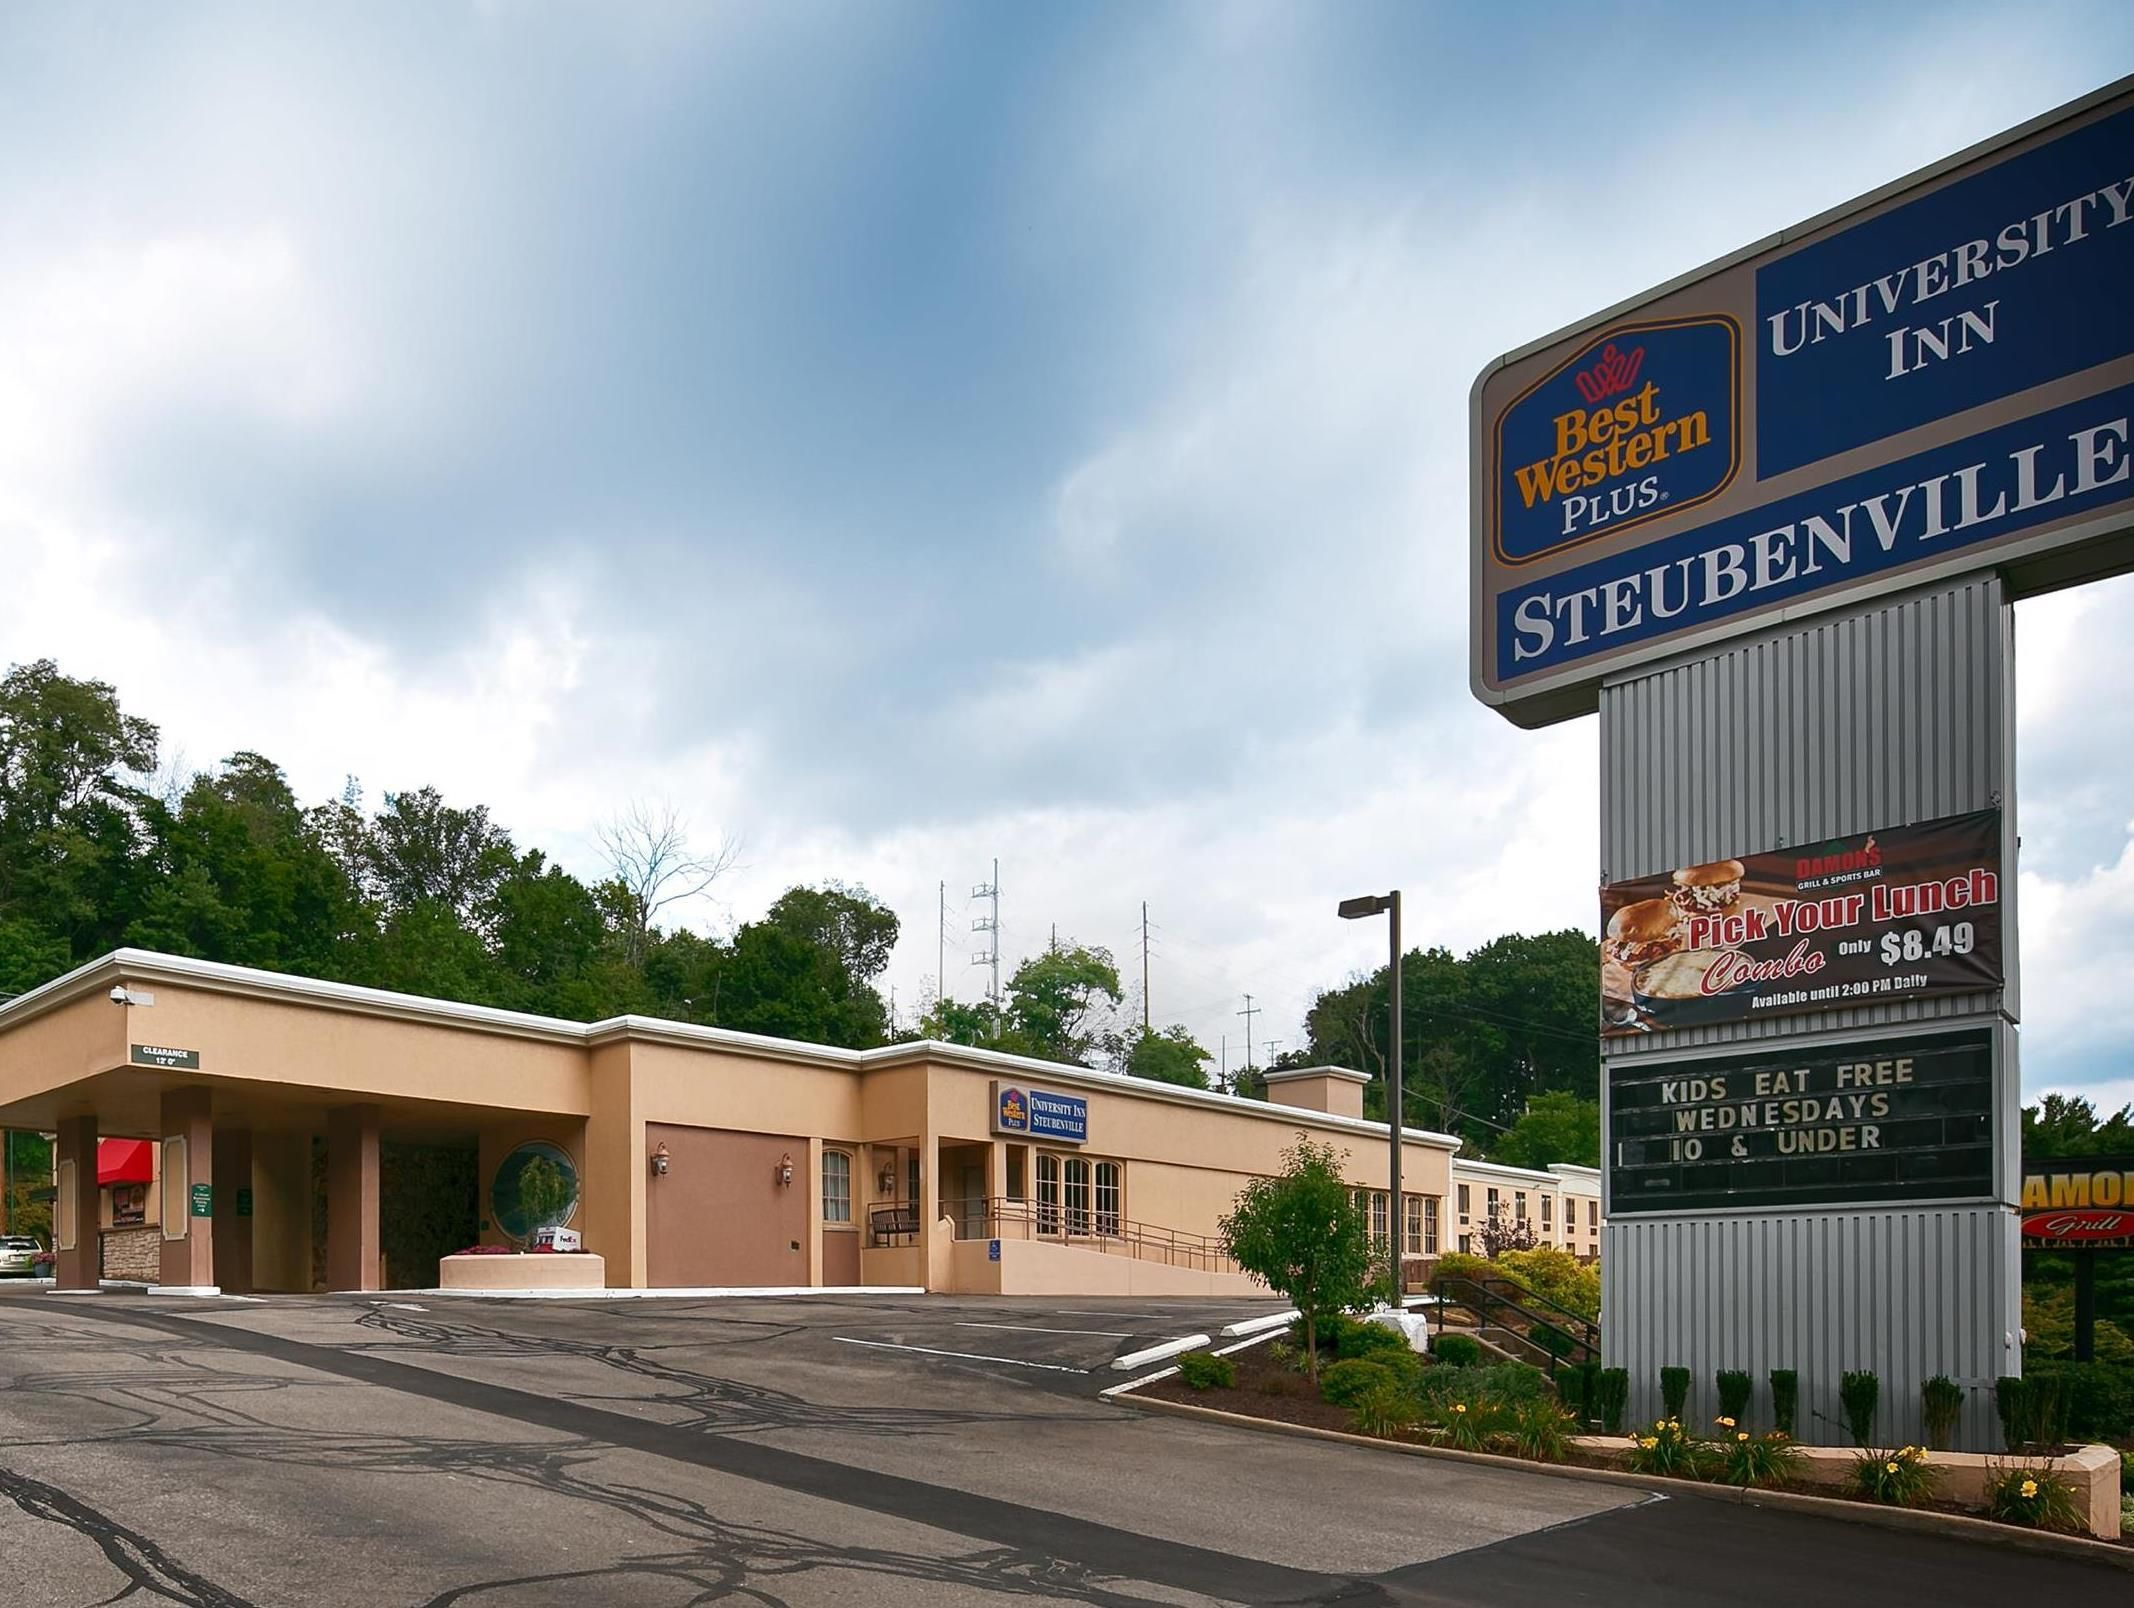 Steubenville Oh Best Western Plus University Inn United States North America Is A Por